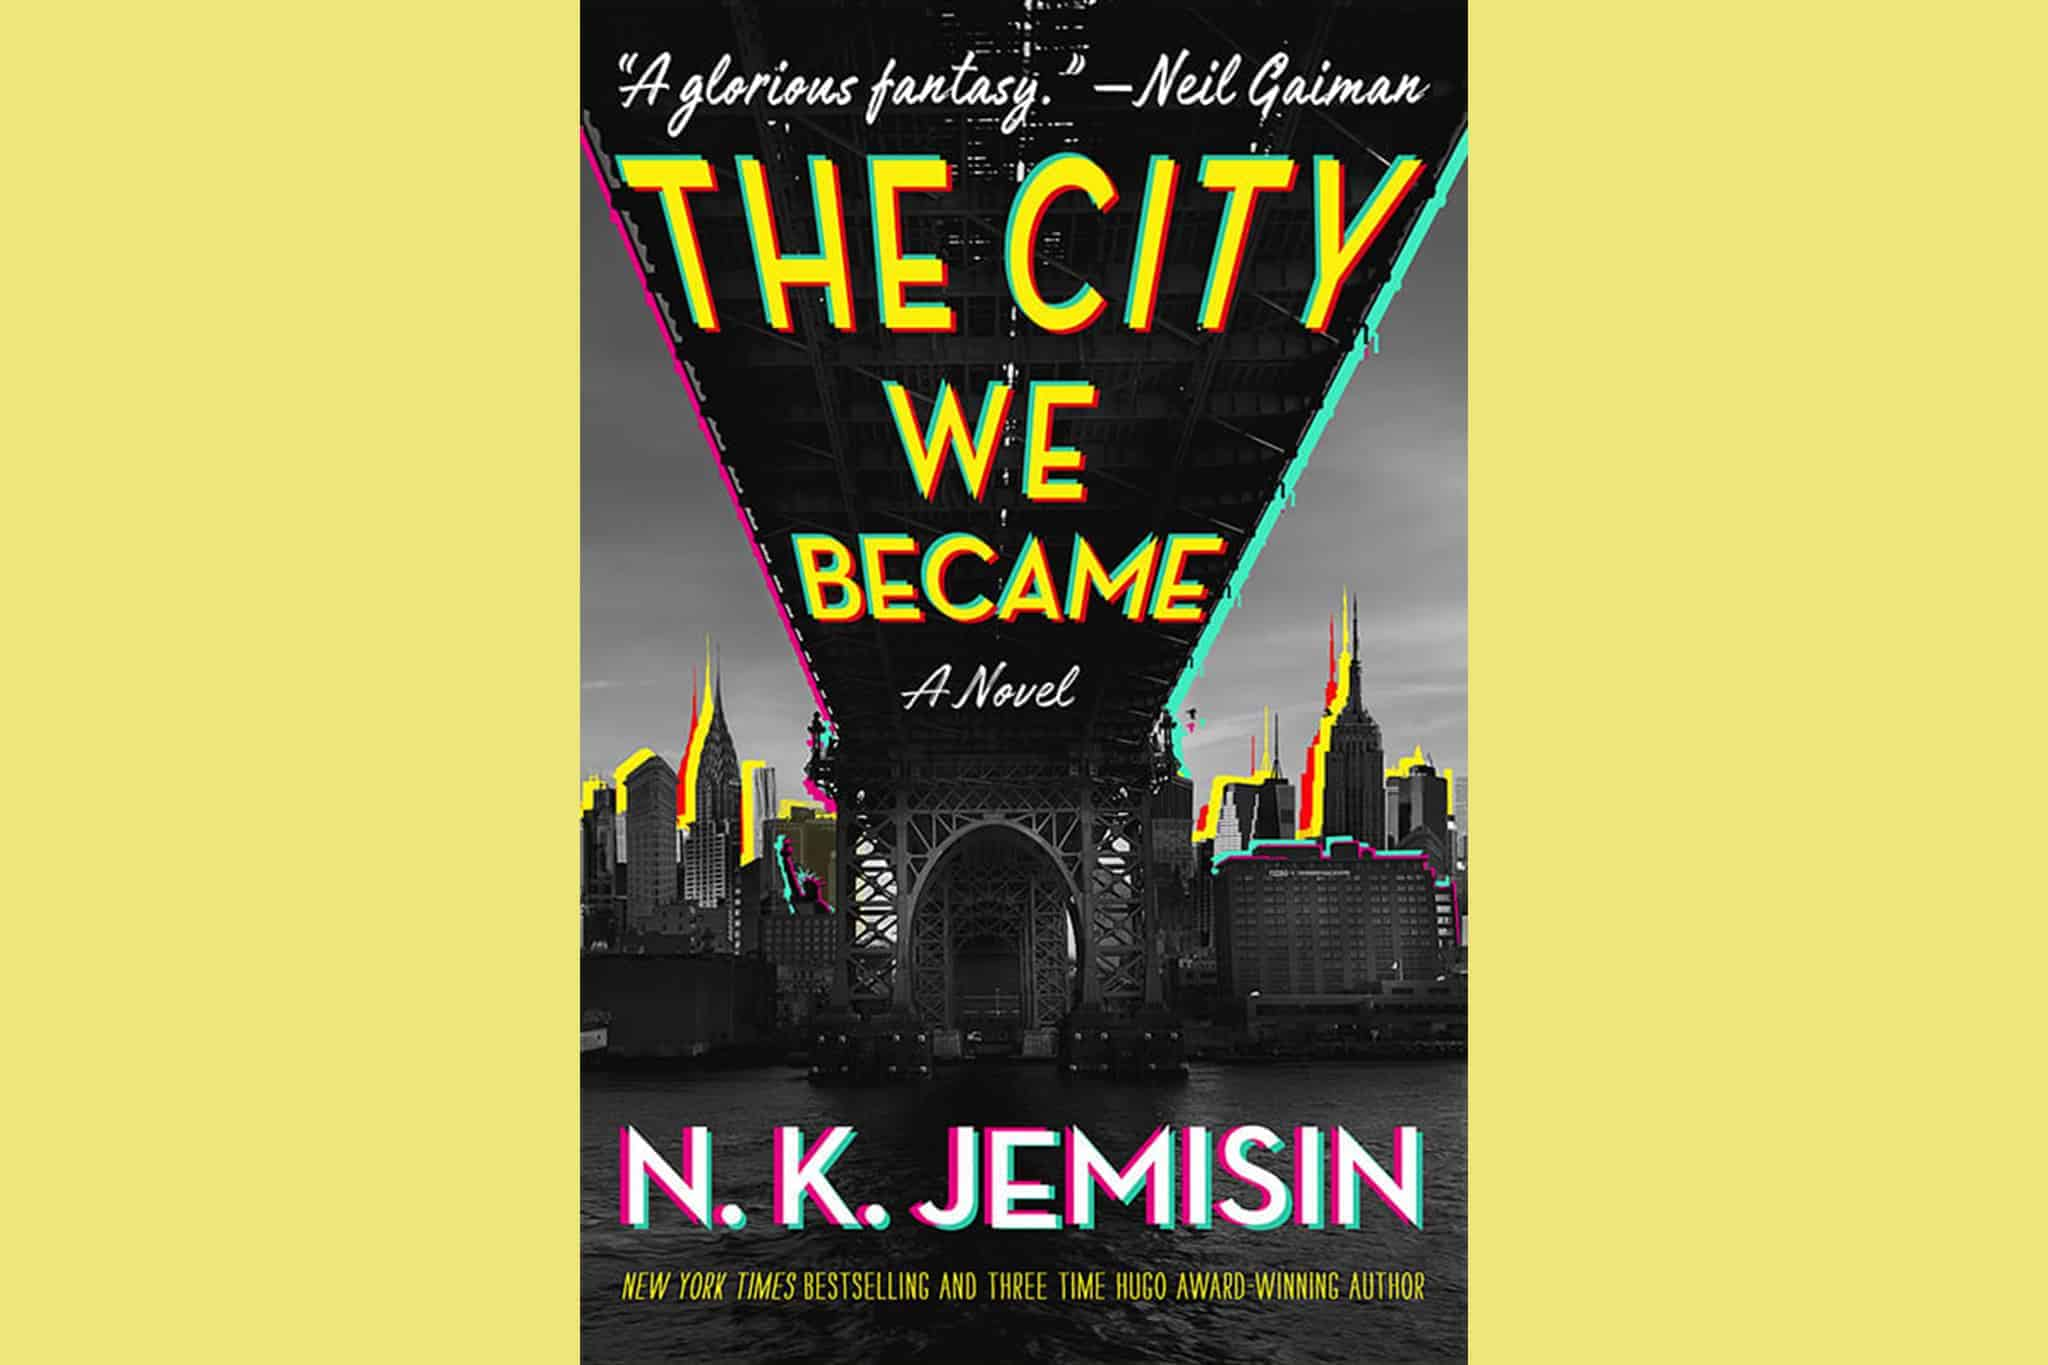 The City We Became A Novel (The Great Cities Trilogy, 1) By N. K. Jemisin